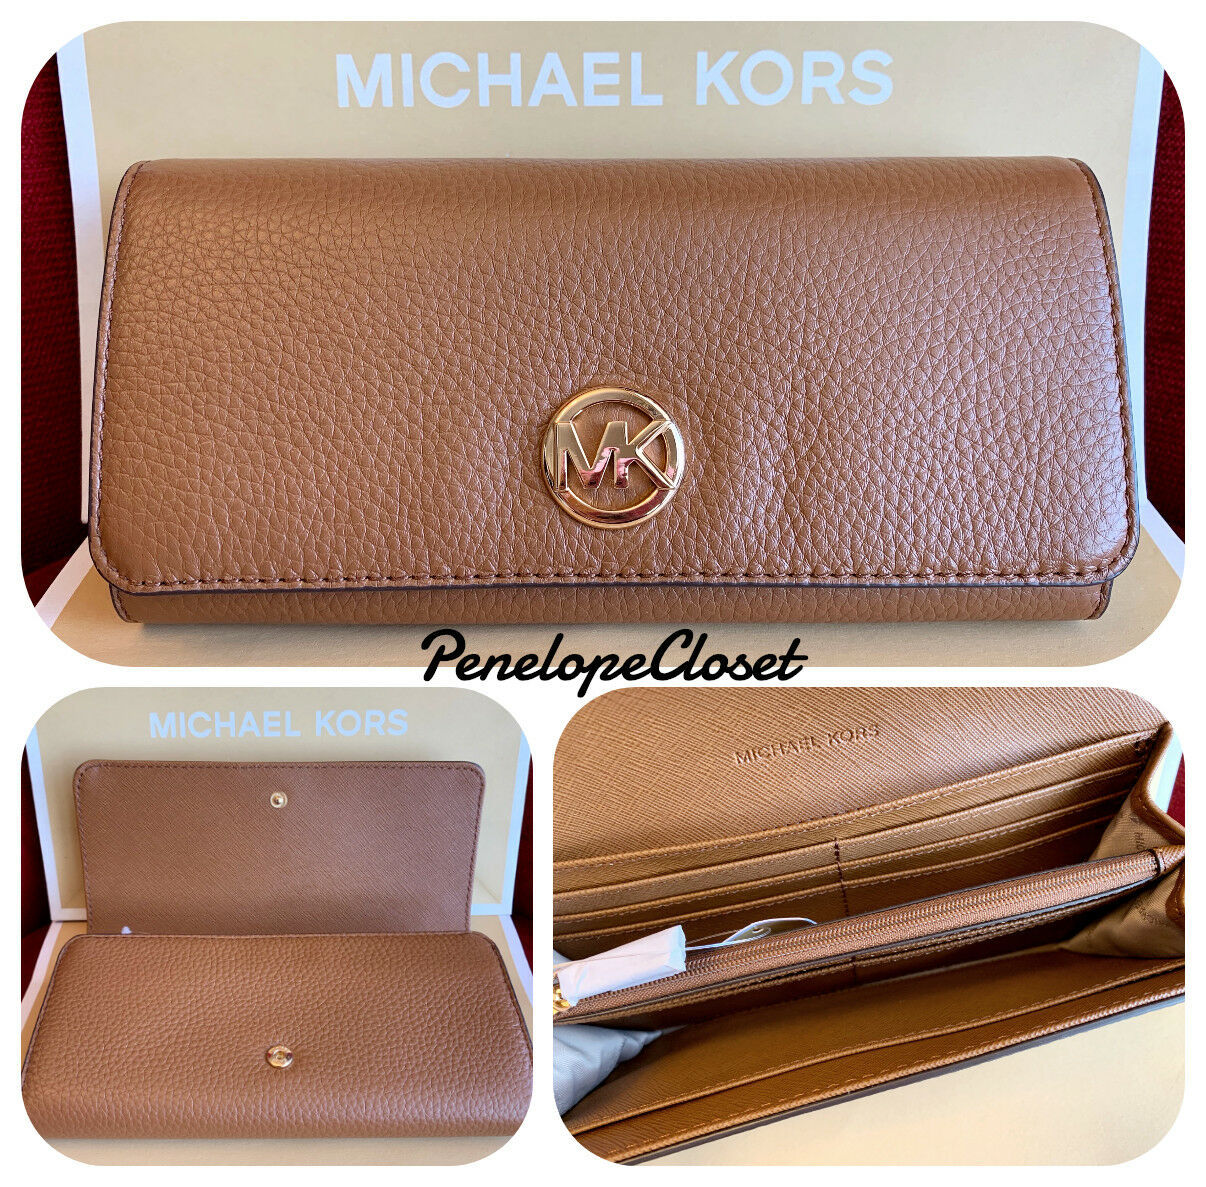 af7ac51c7248d0 Nwt Michael Kors New Pebbled Leather Fulton and 14 similar items. 57